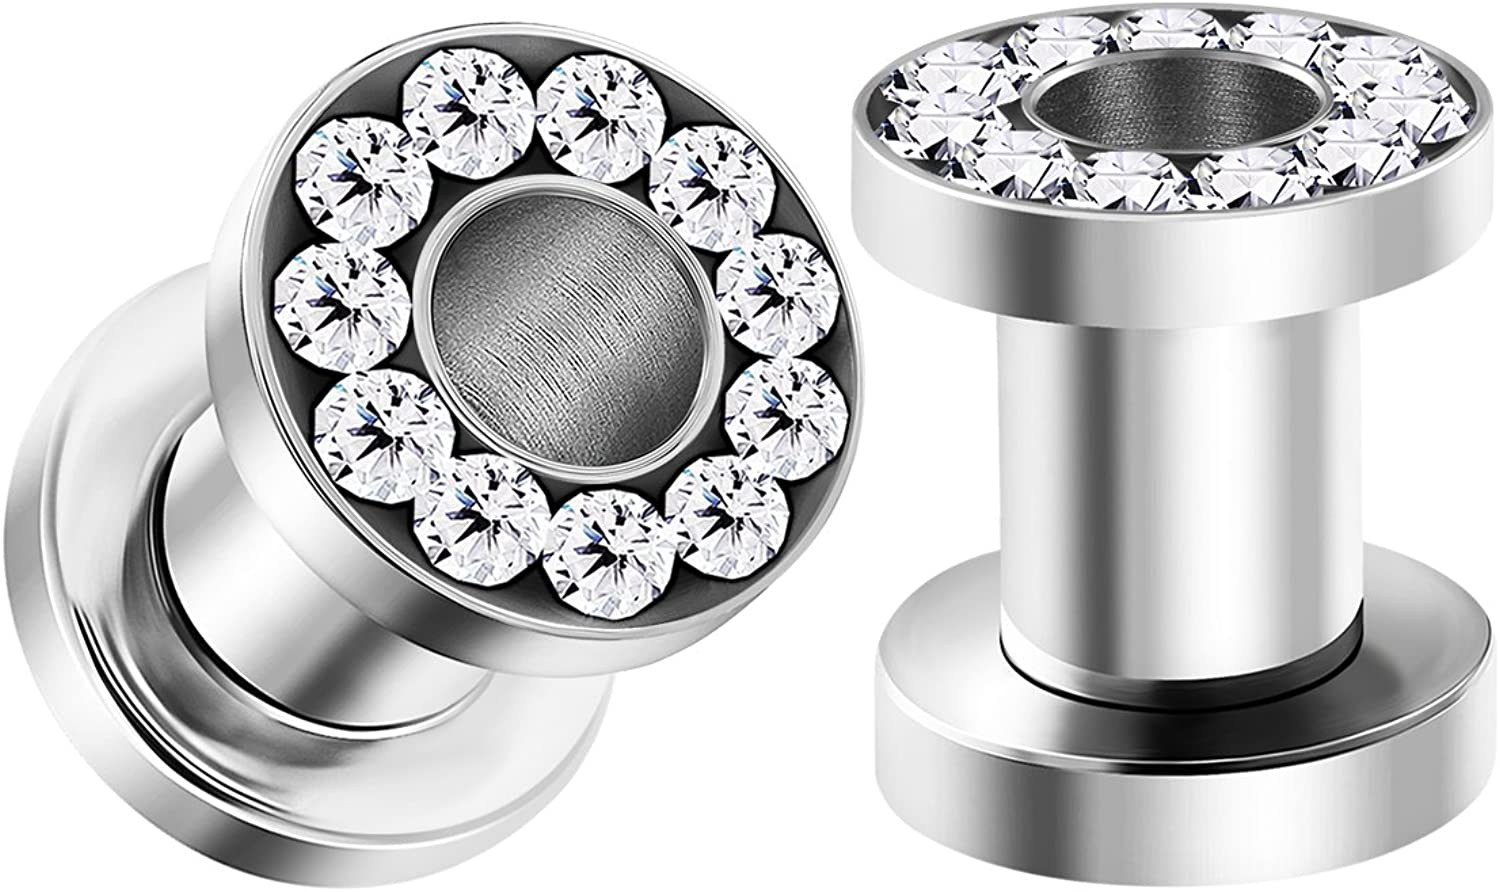 BIG GAUGES Pair of 316L Surgical Steel Polished Screw-fit Clear Crystal Piercing Jewelry Ear Stretching Lobe Plugs Flesh Tunnel Earring